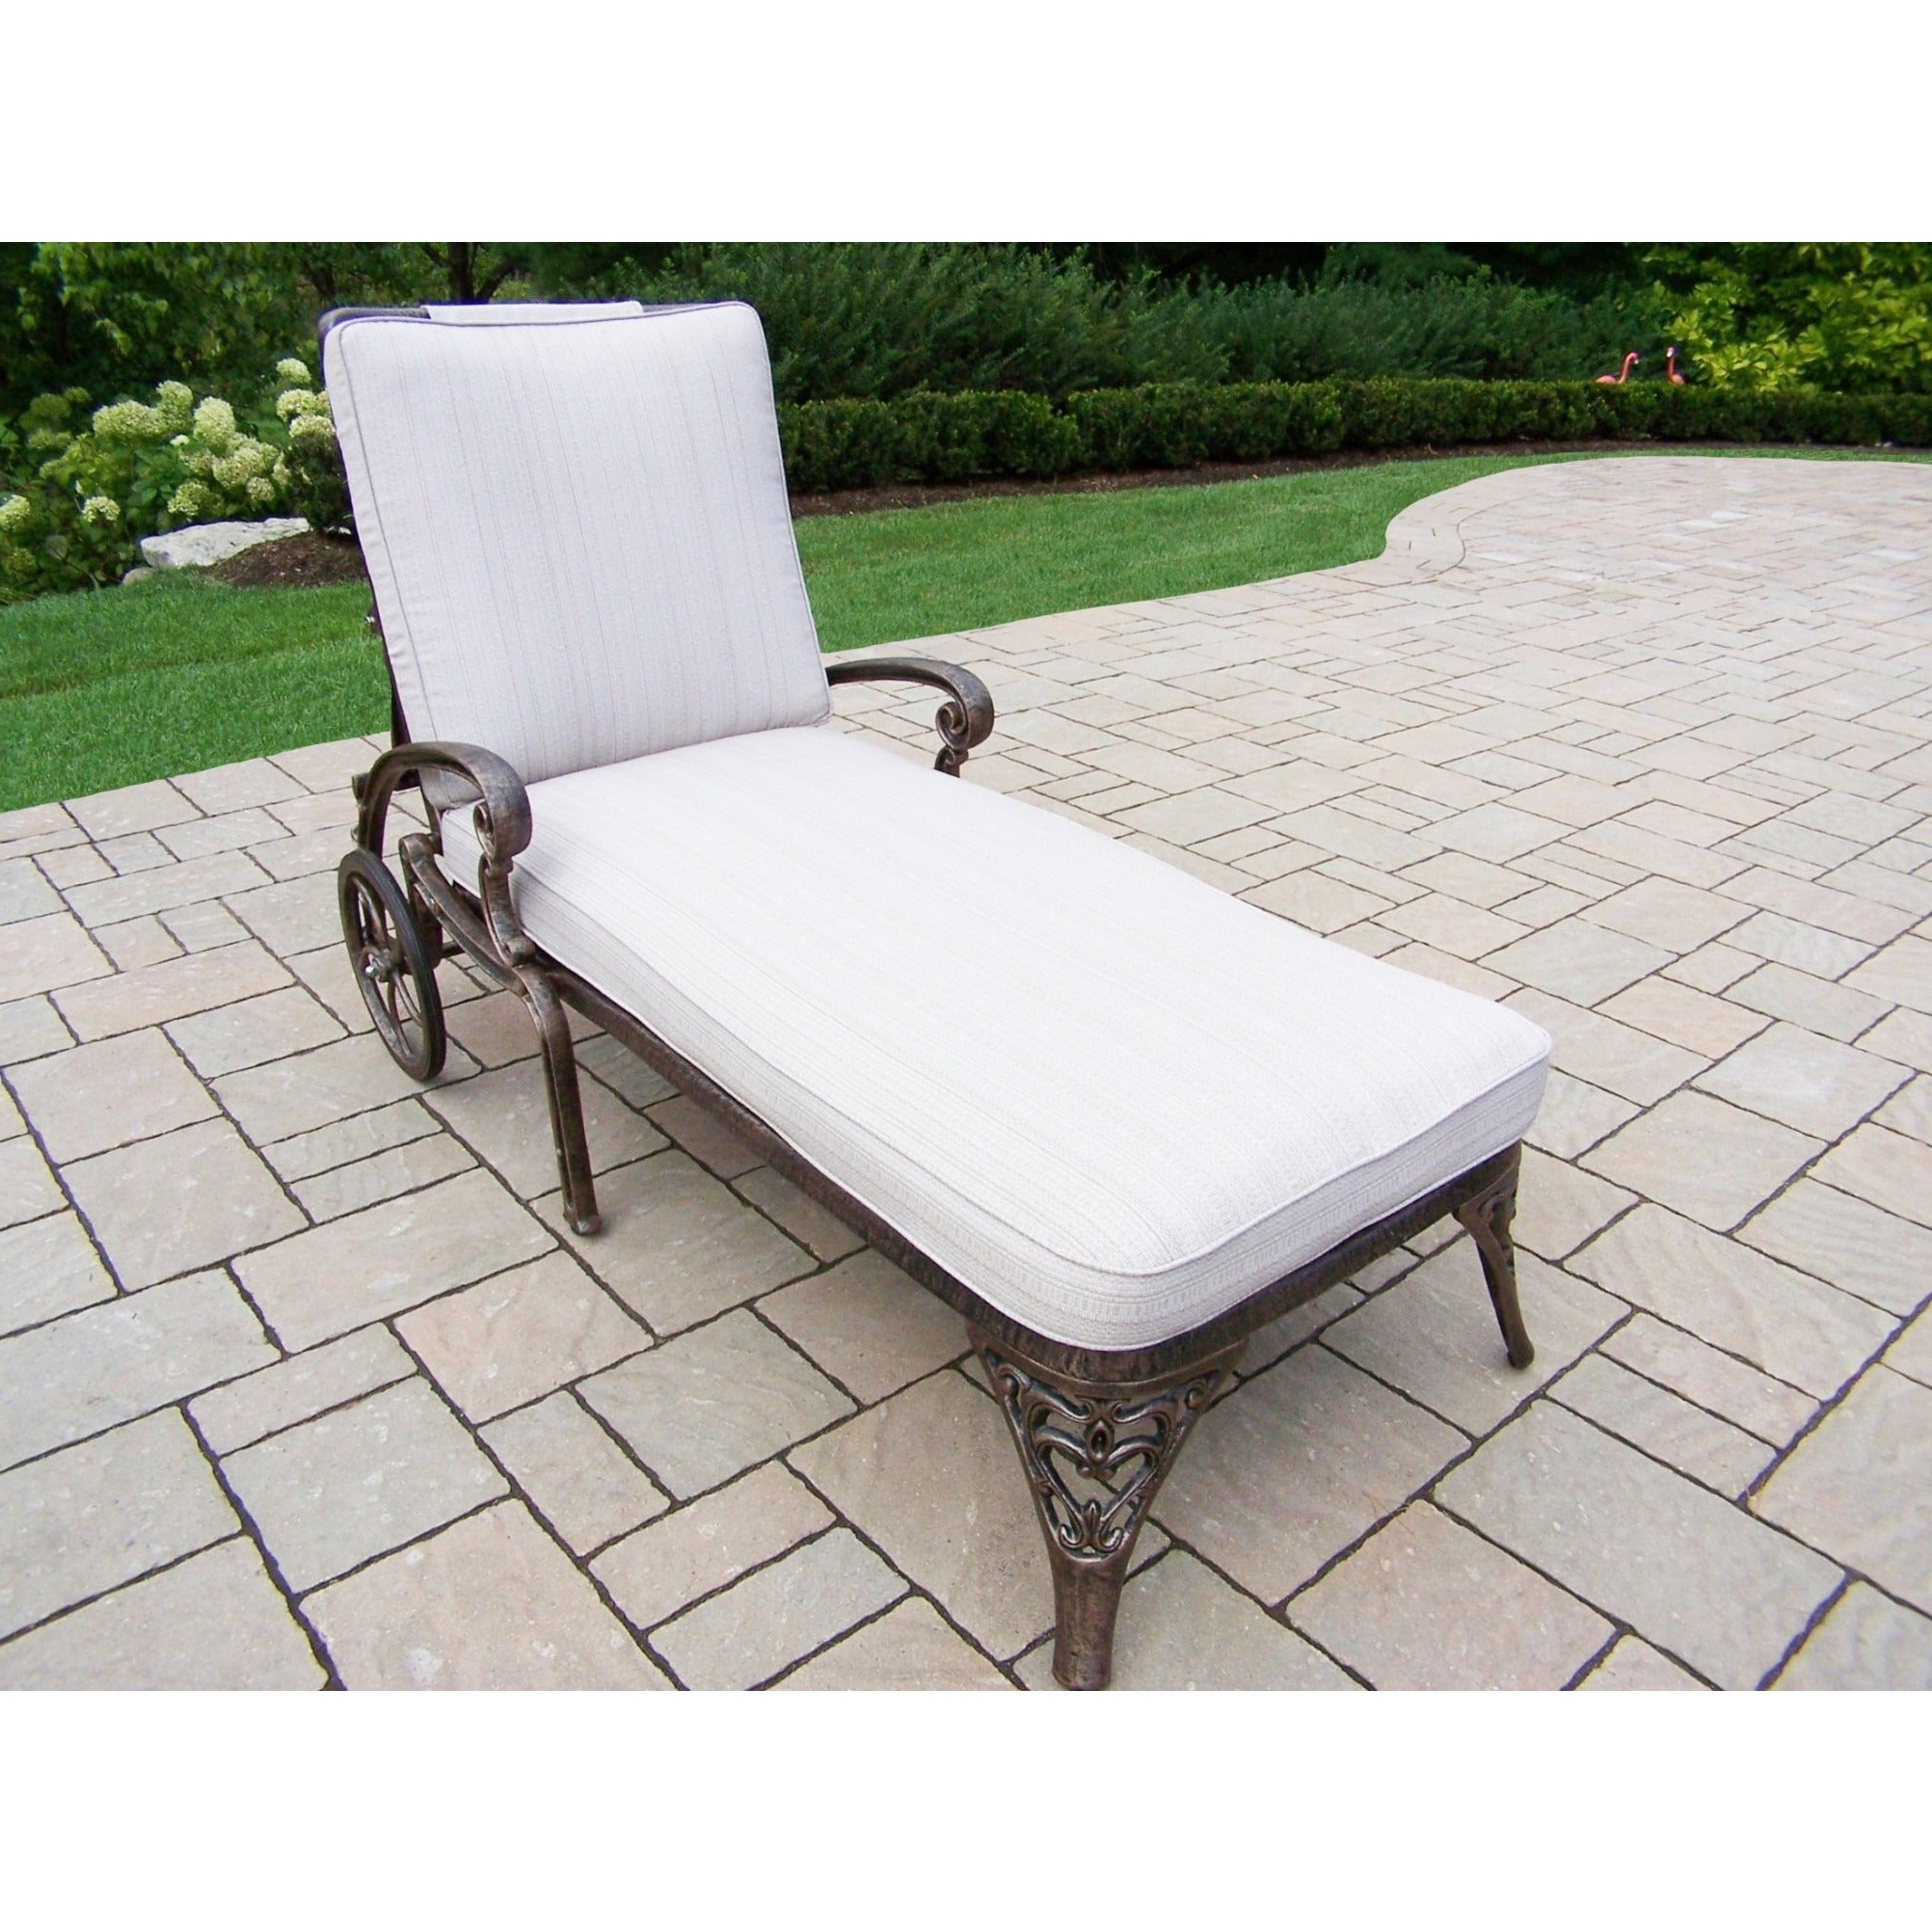 Floral Blossom Chaise Lounge Chairs With Cushion Throughout Preferred Dakota Cushioned Cast Aluminum Chaise Lounge With Wheels (View 17 of 25)